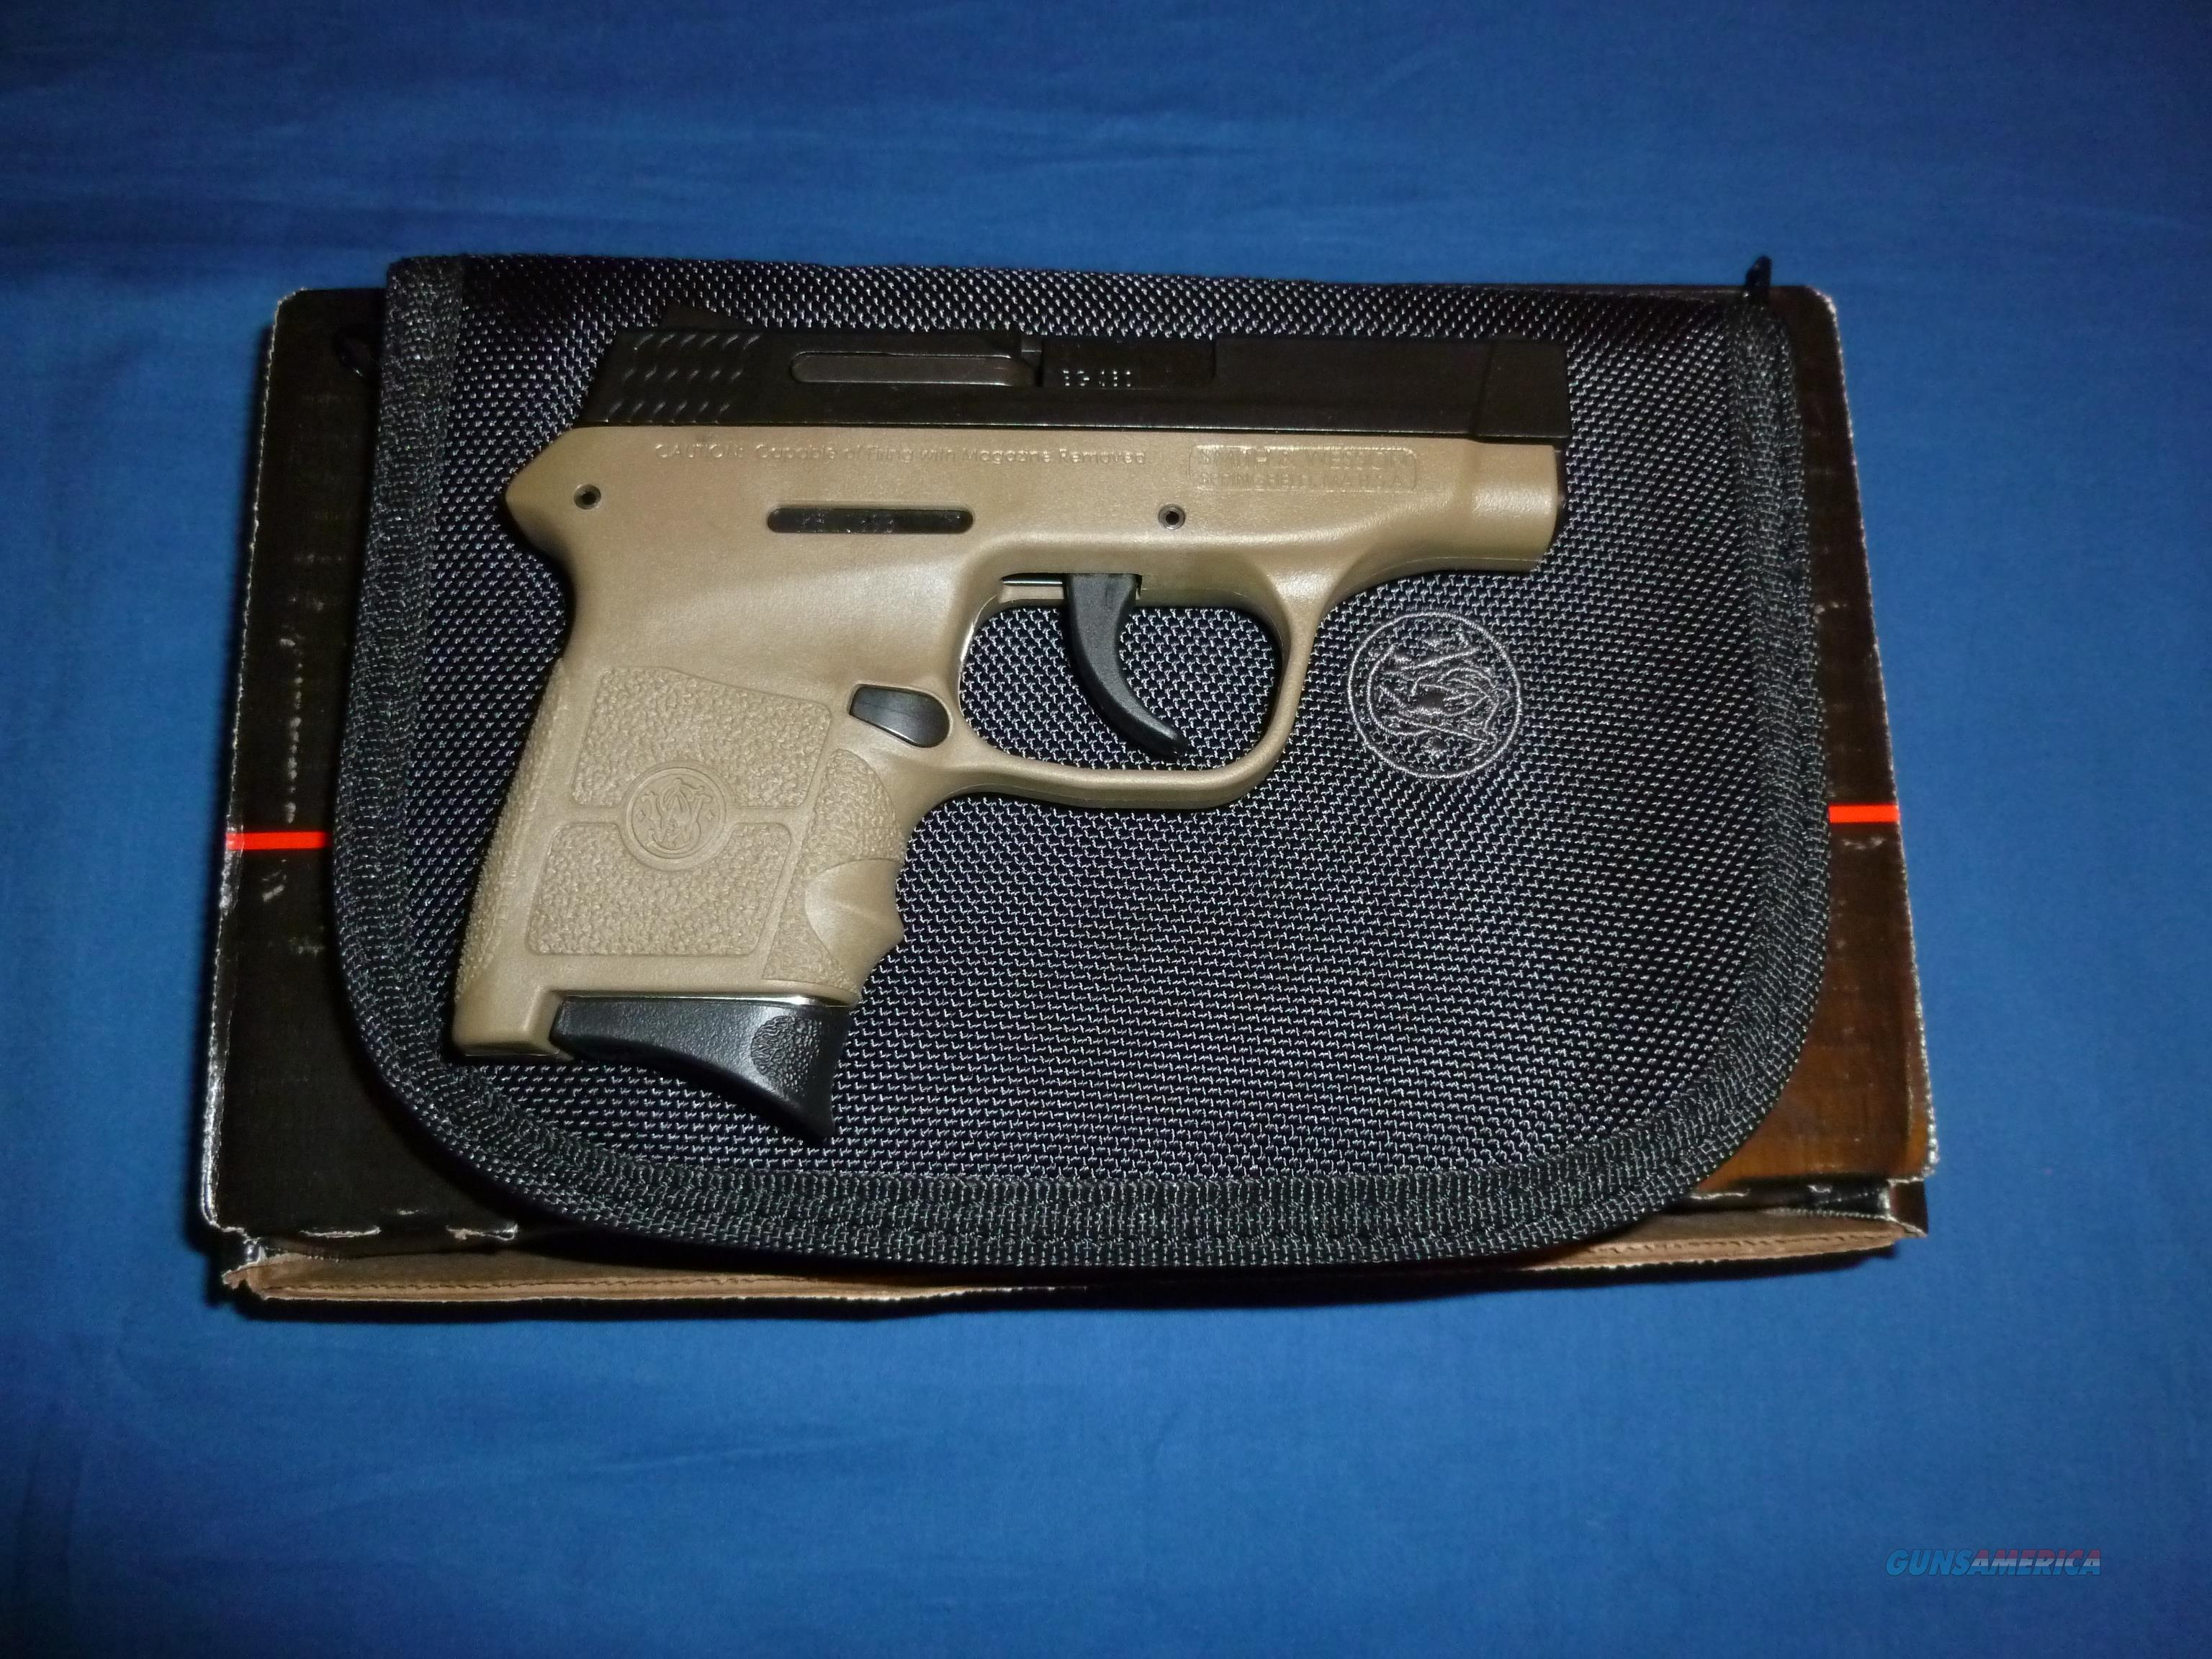 SALE PRICED!  SMITH & WESSON M&P BODYGUARD 380ACP MICRO-COMPACT PISTOL FLAT DARK EARTH  Guns > Pistols > Smith & Wesson Pistols - Autos > Polymer Frame